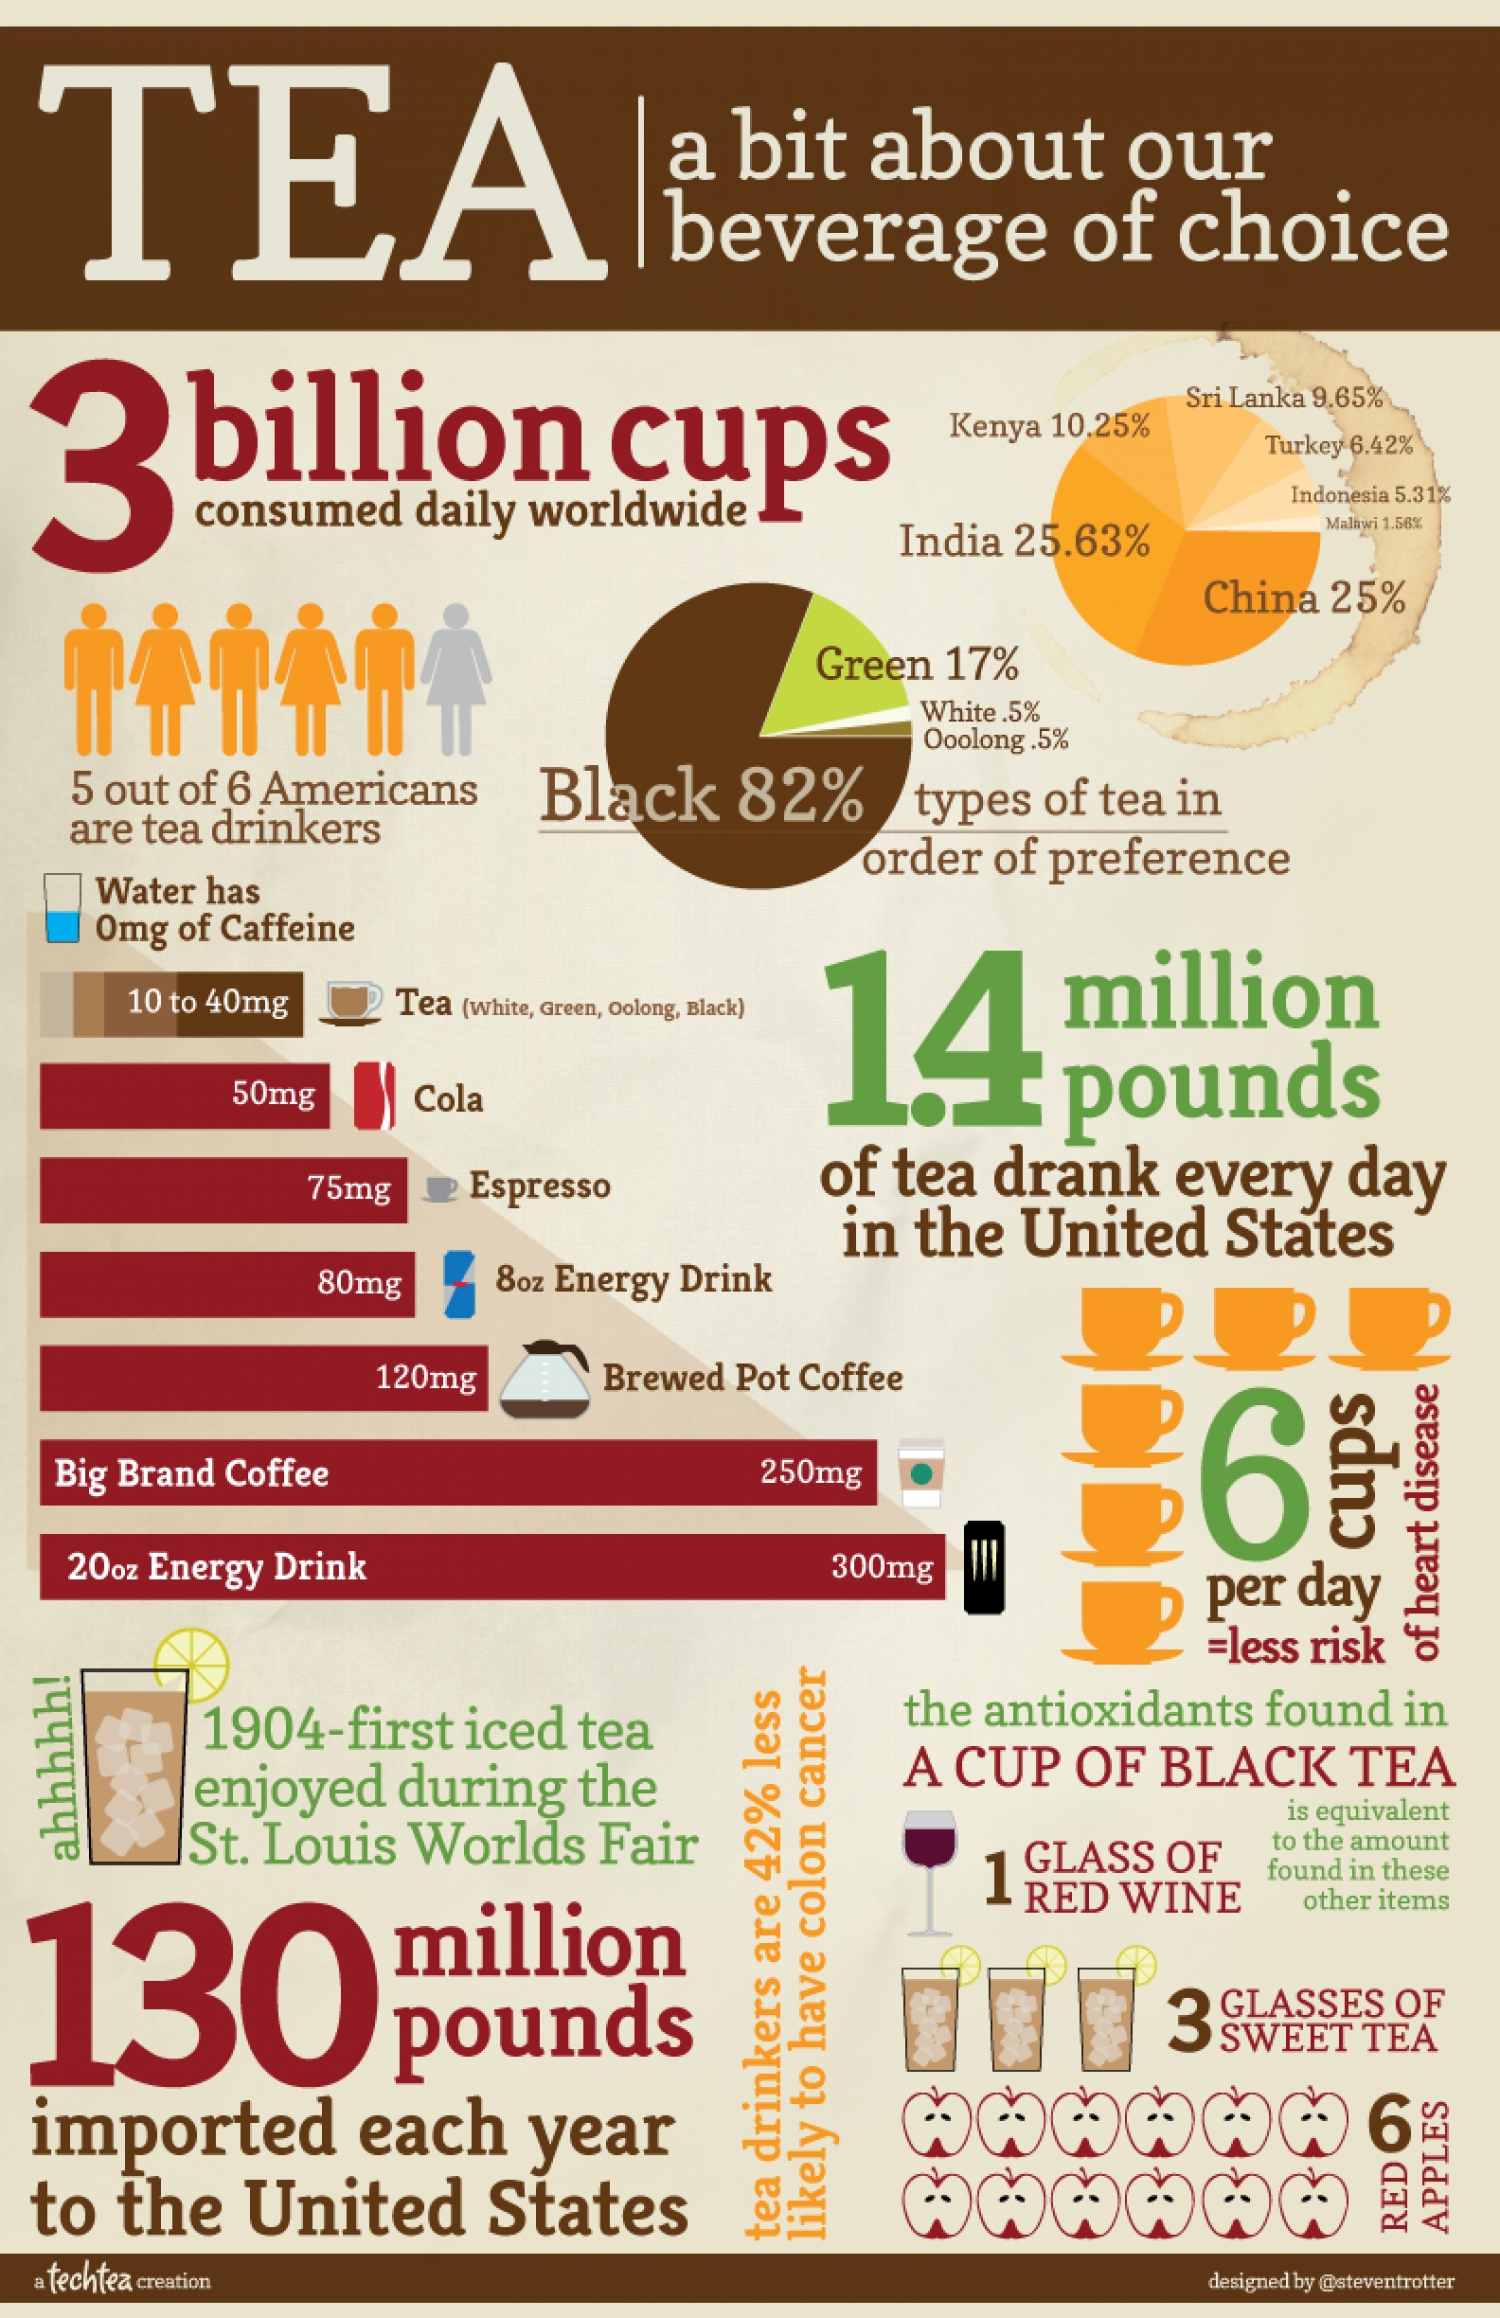 Tea: A Bit About Our Beverage of Choice Infographic